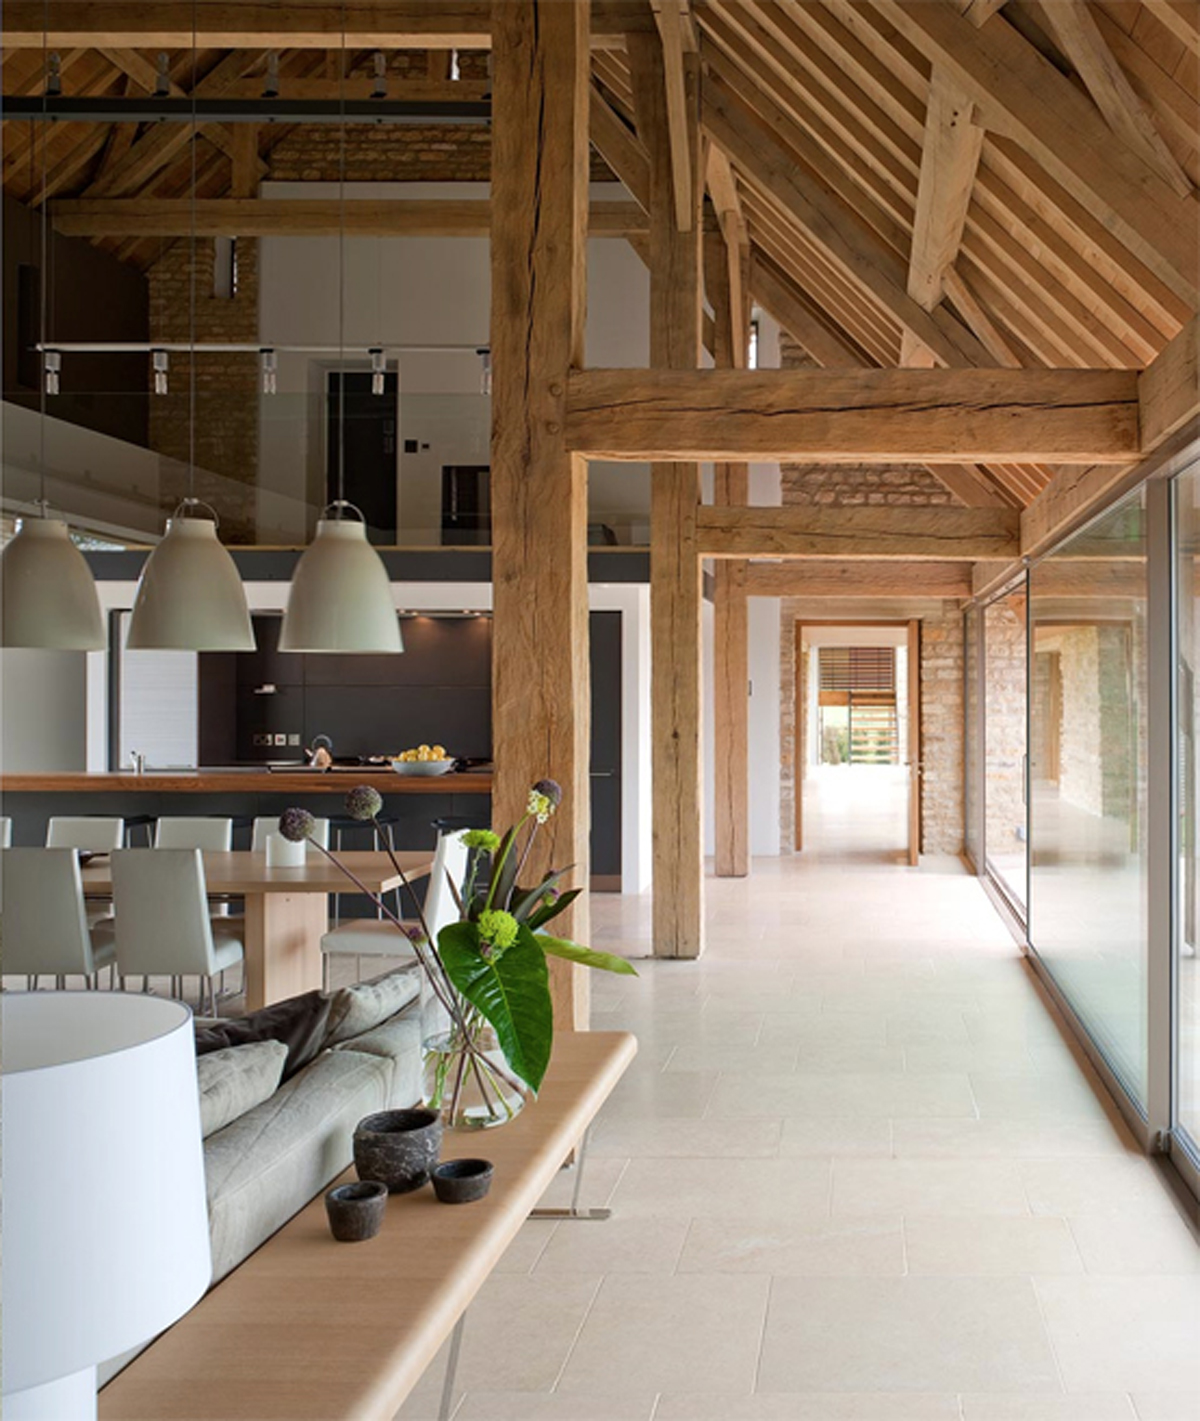 Contemporary House Design Renovated From Barn House